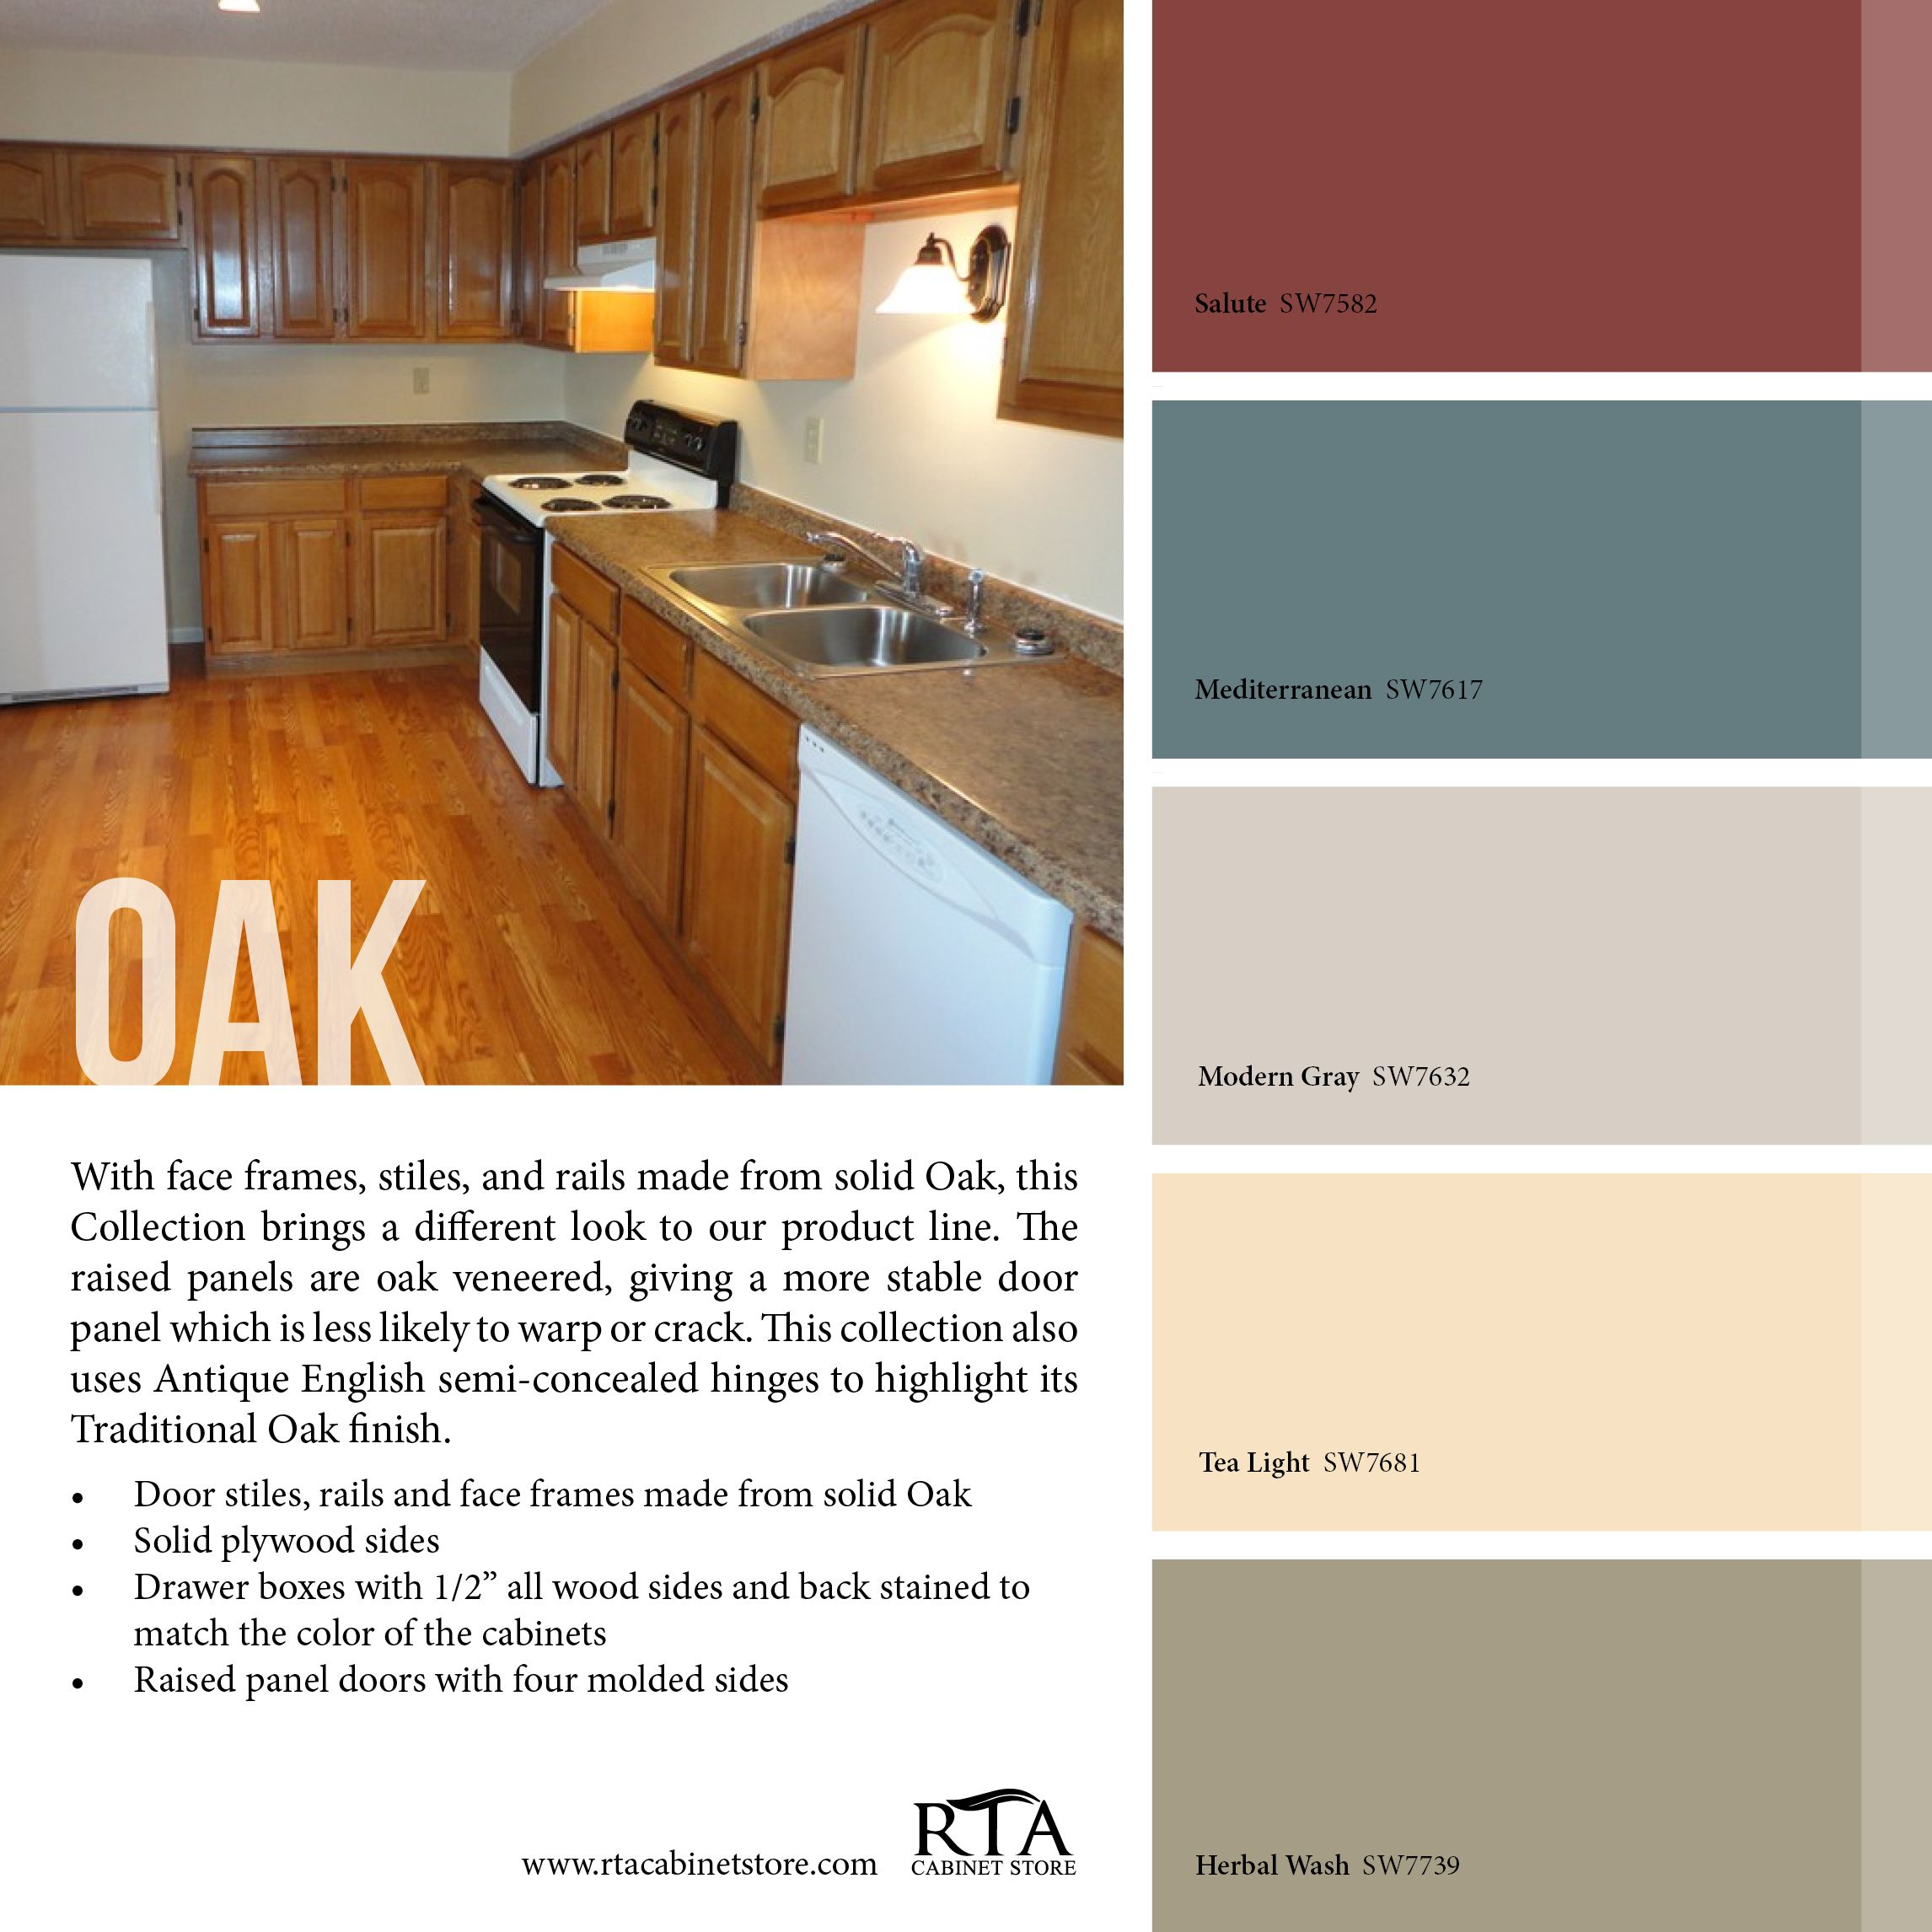 Best Kitchen Paint Colors With Oak Cabinets: Color Palette To Go With Oak Kitchen Cabinet Line- For